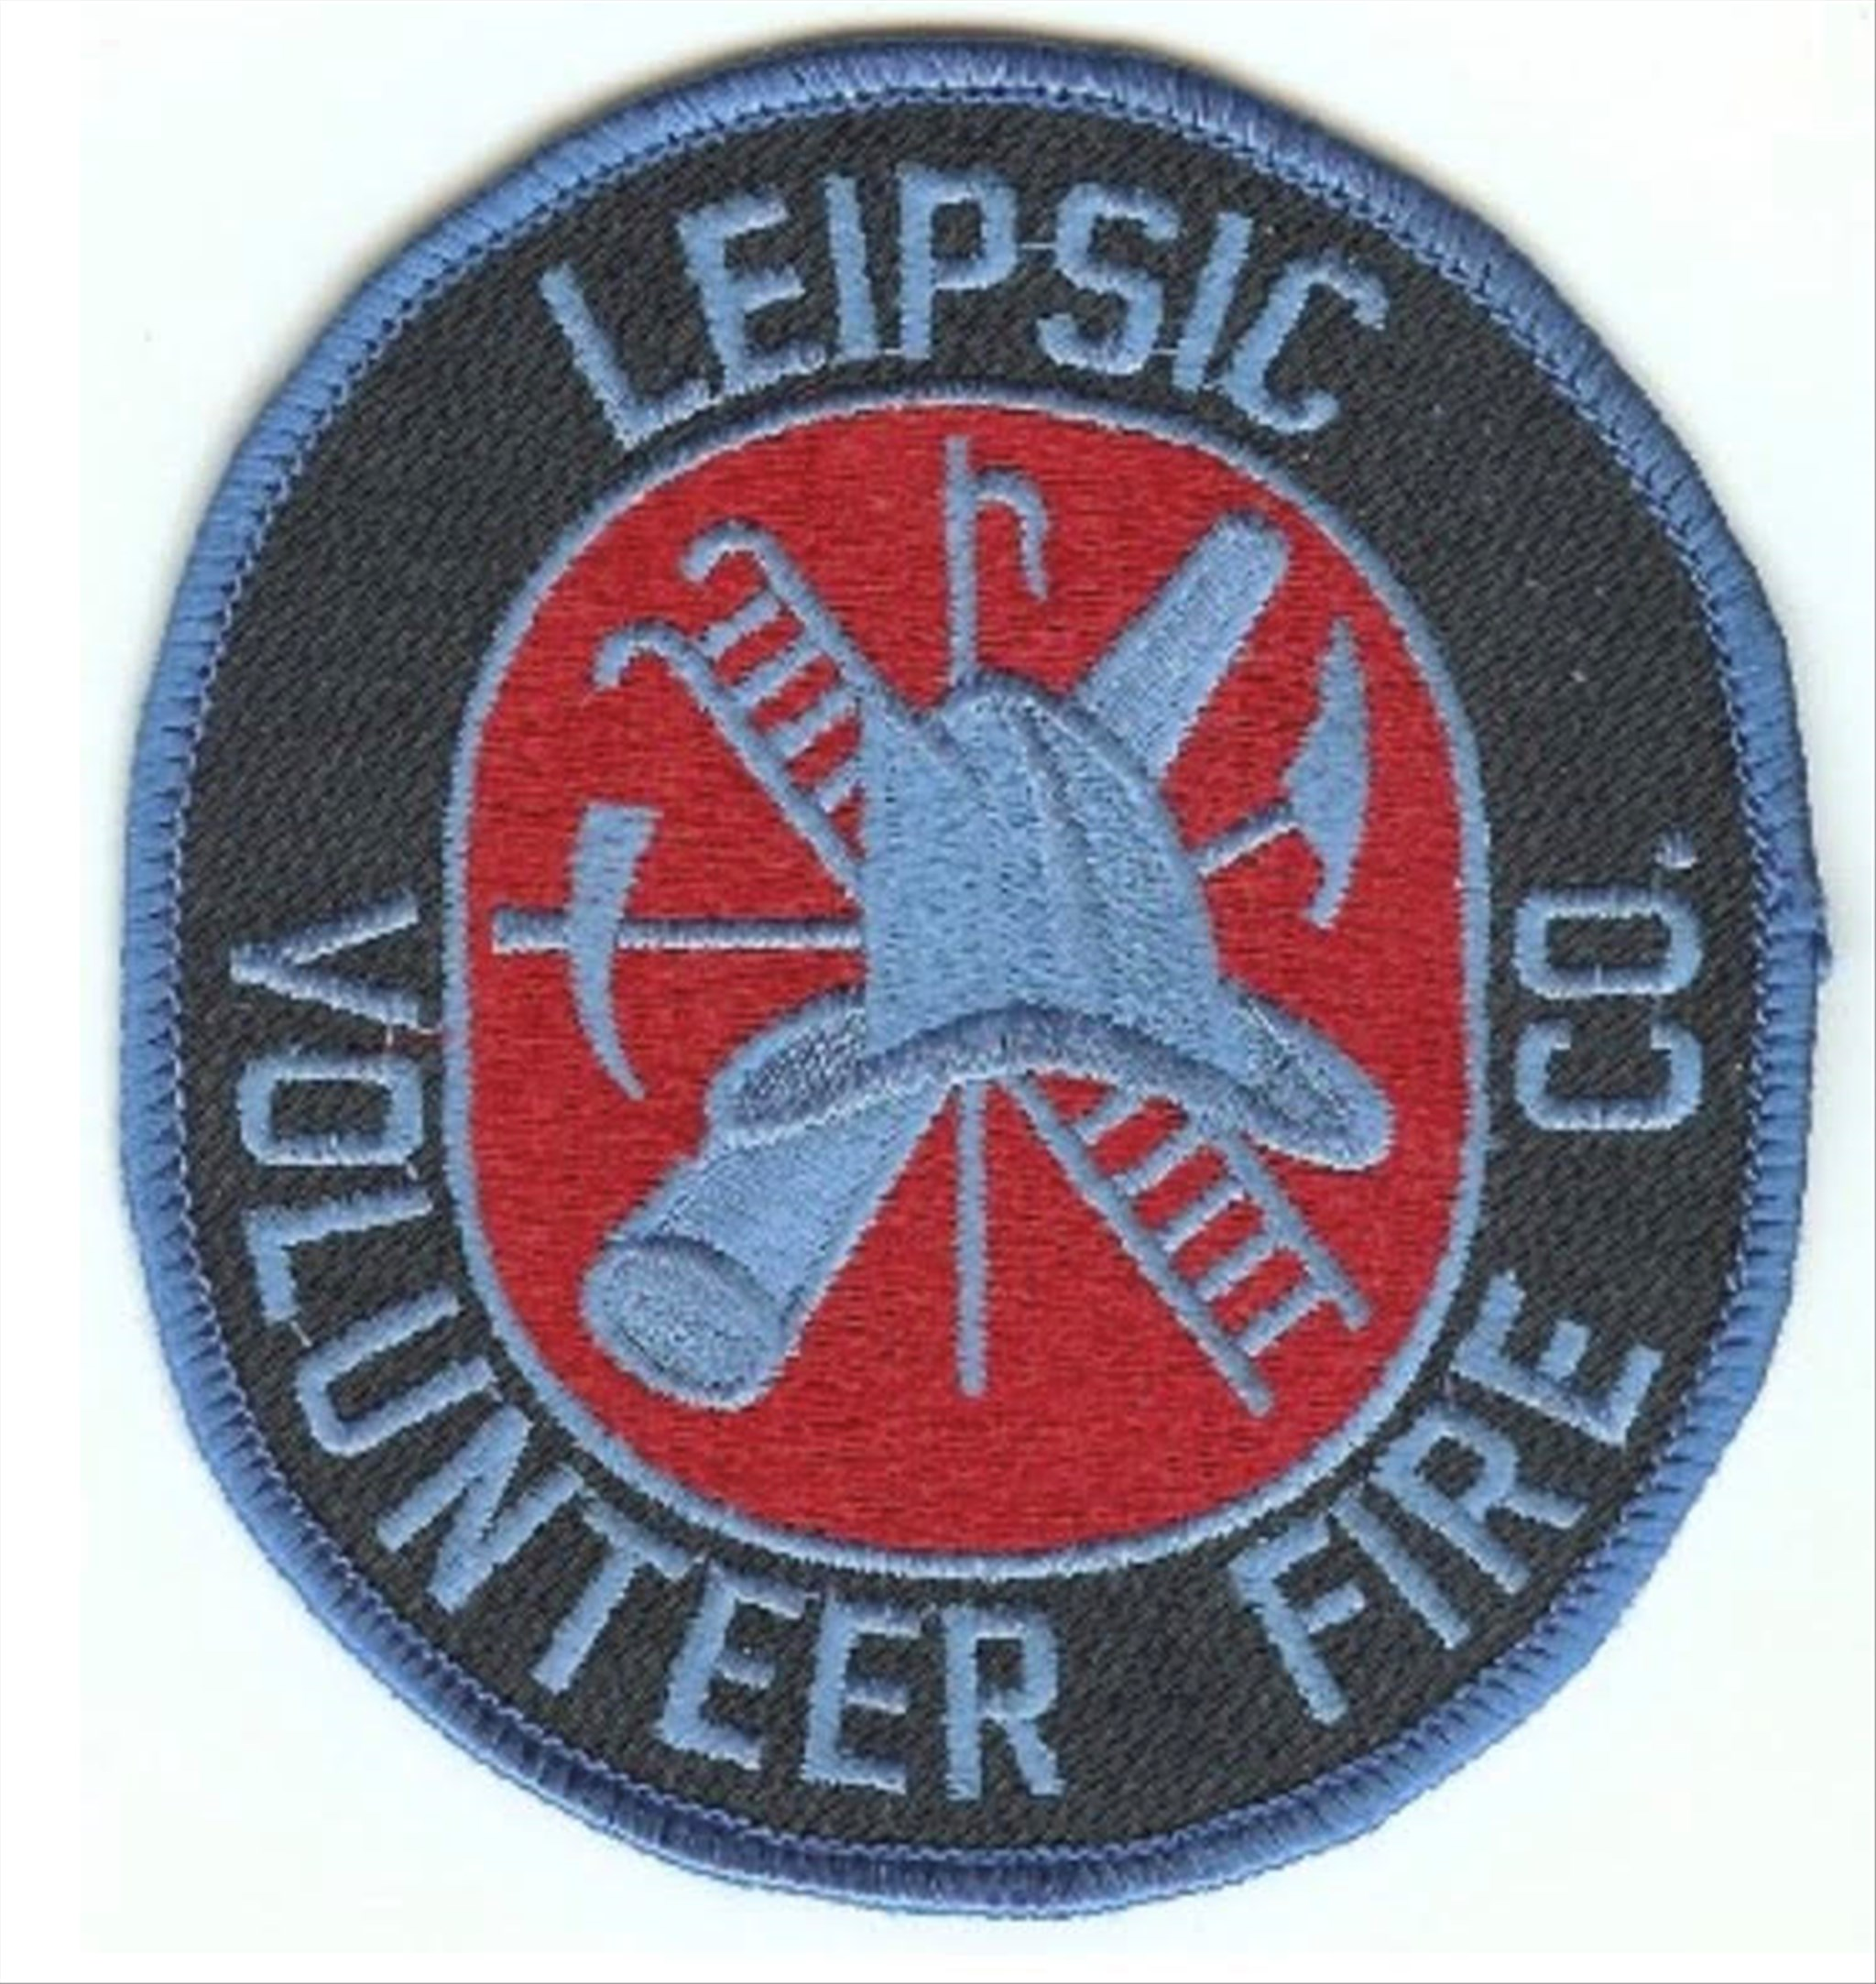 leipsic volunteer fire company kent county delaware welcome to the new website